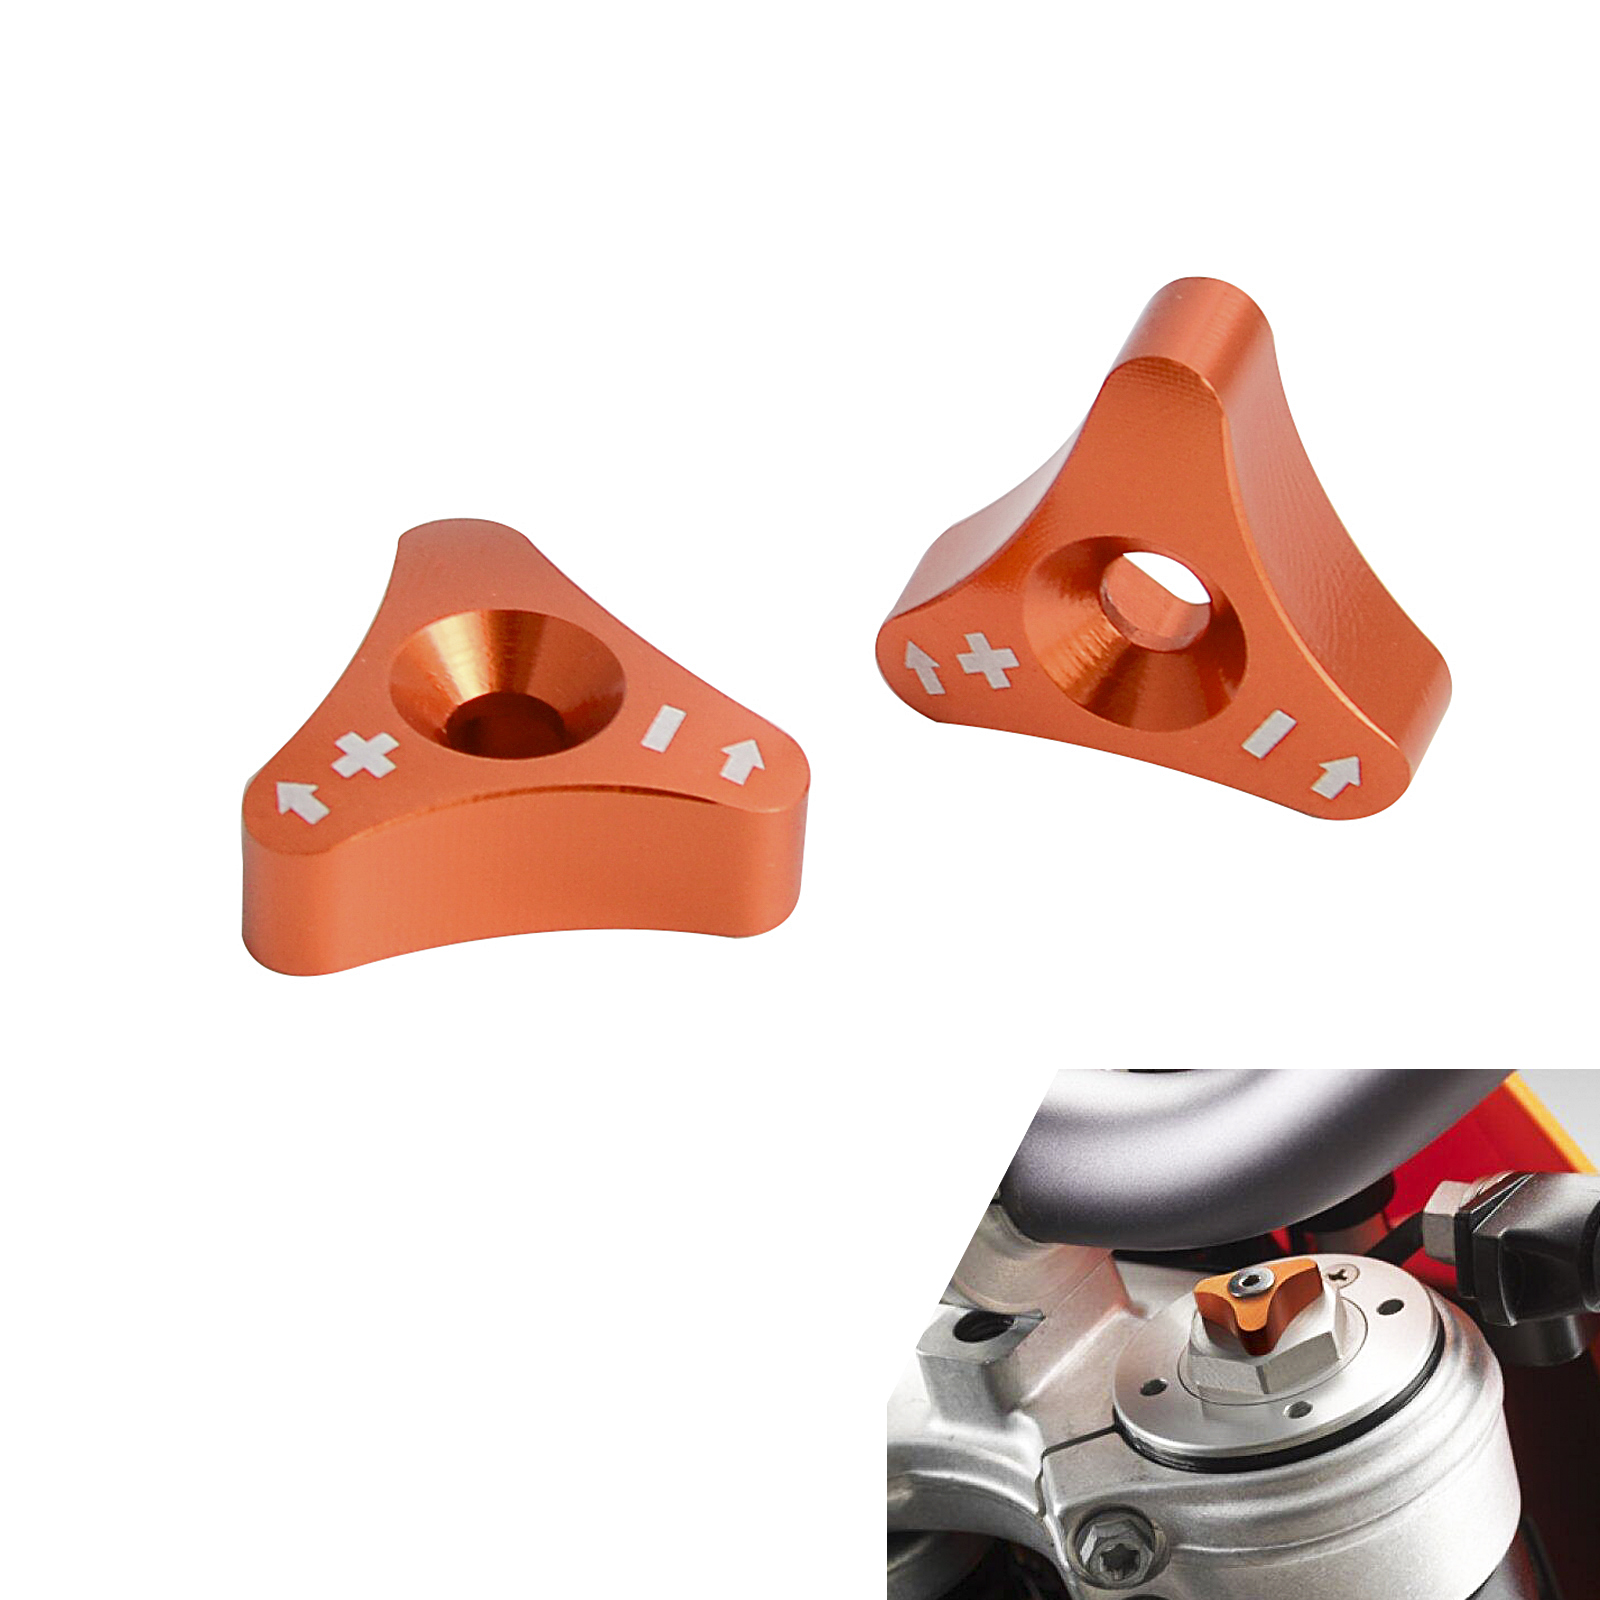 48mm Front Fork Knob Adjuster For KTM 125 150 250 350 450 SX SXF EXCF XC XCF XCW For Husaberg Husqvarna TE FE TC FC 350S 501S48mm Front Fork Knob Adjuster For KTM 125 150 250 350 450 SX SXF EXCF XC XCF XCW For Husaberg Husqvarna TE FE TC FC 350S 501S